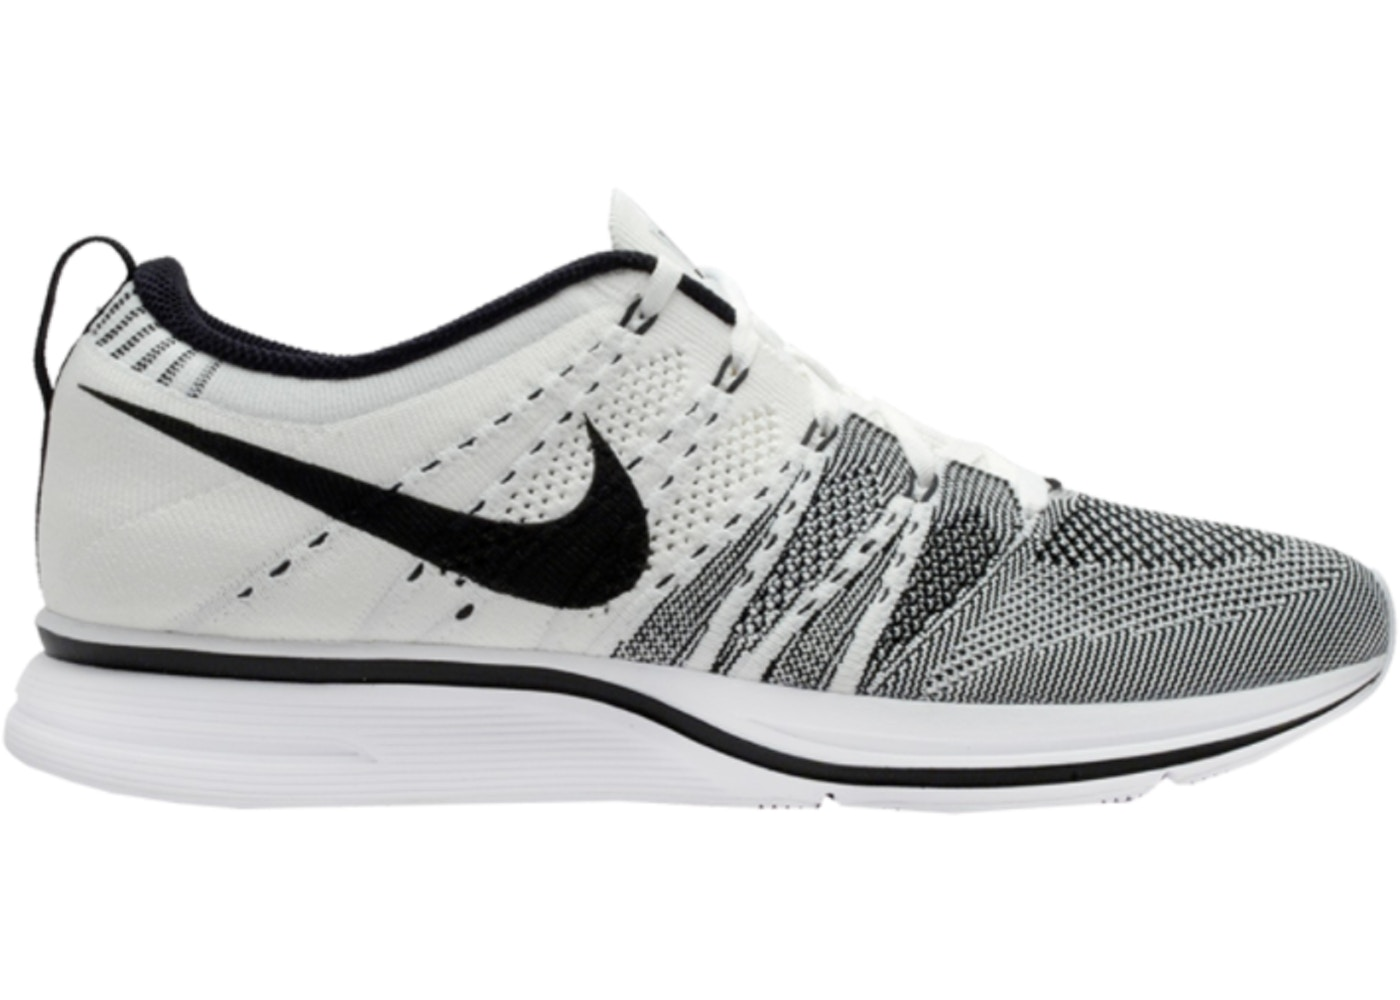 Flyknit Trainer White Black (2012) - 532984-100